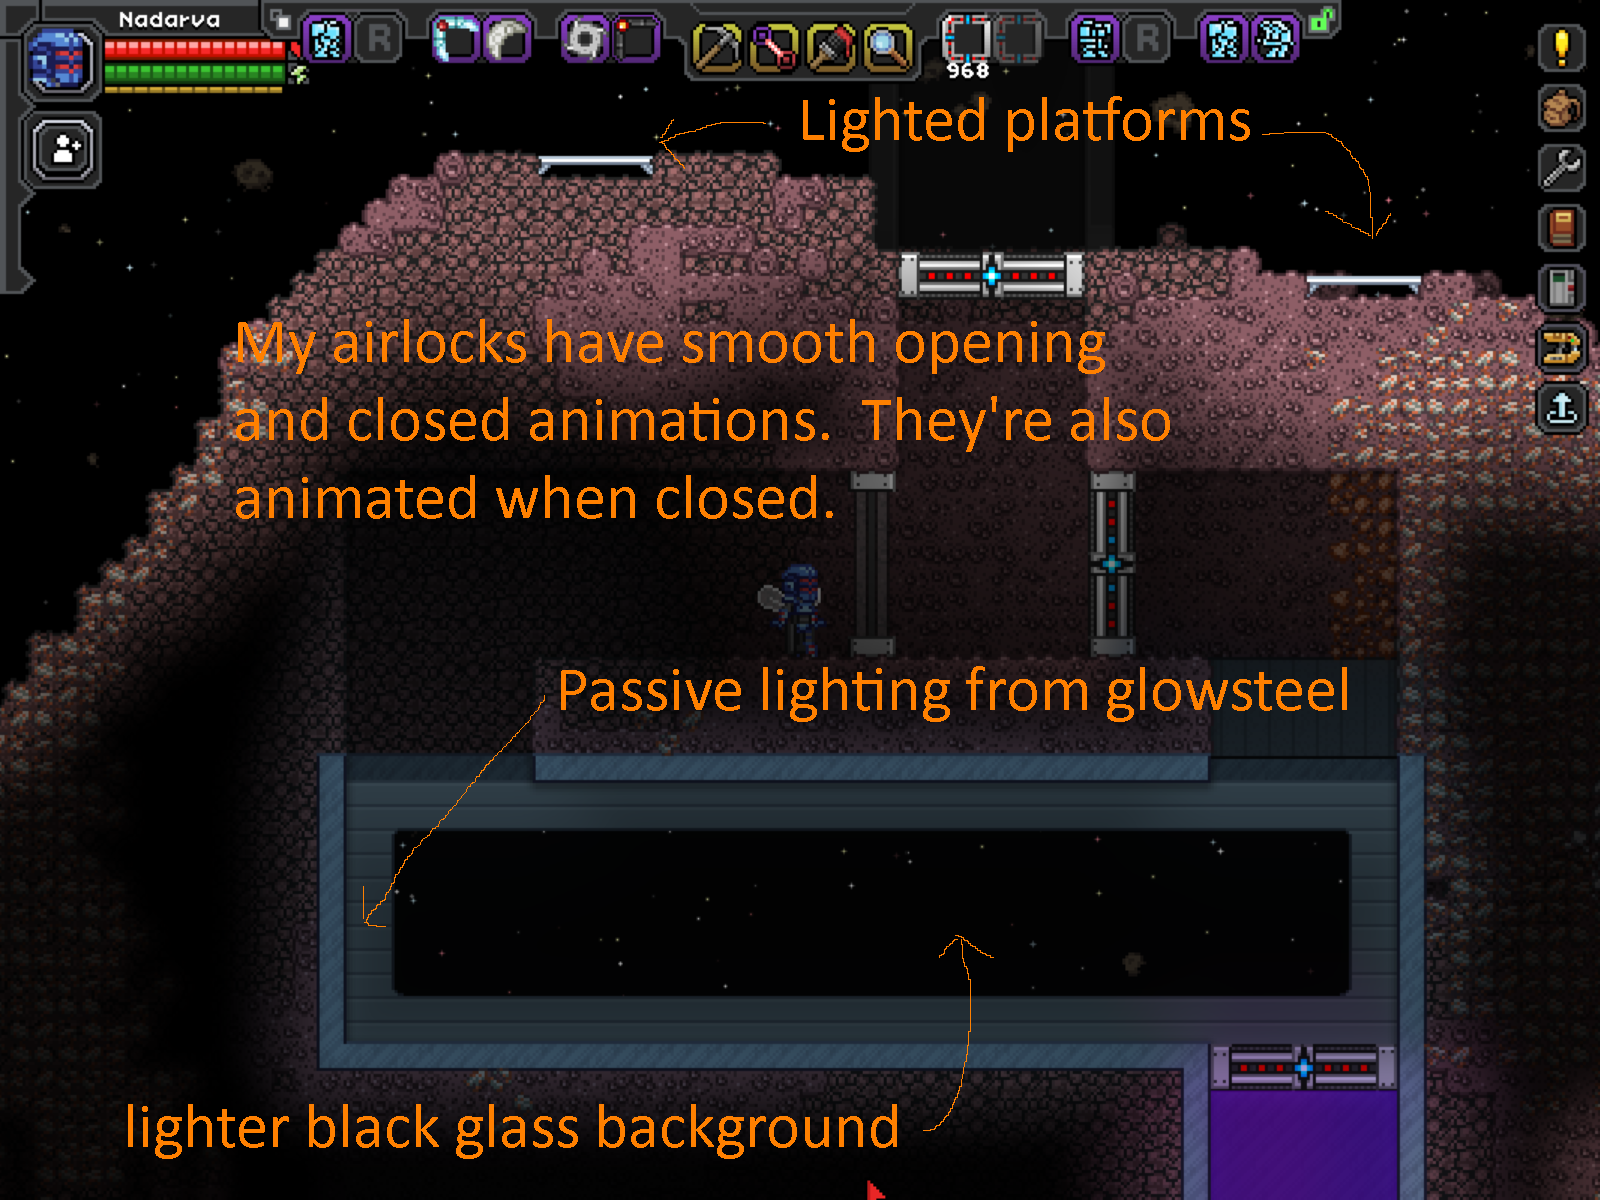 Glowsteel, airlocks, and lighterBlackGlass.png